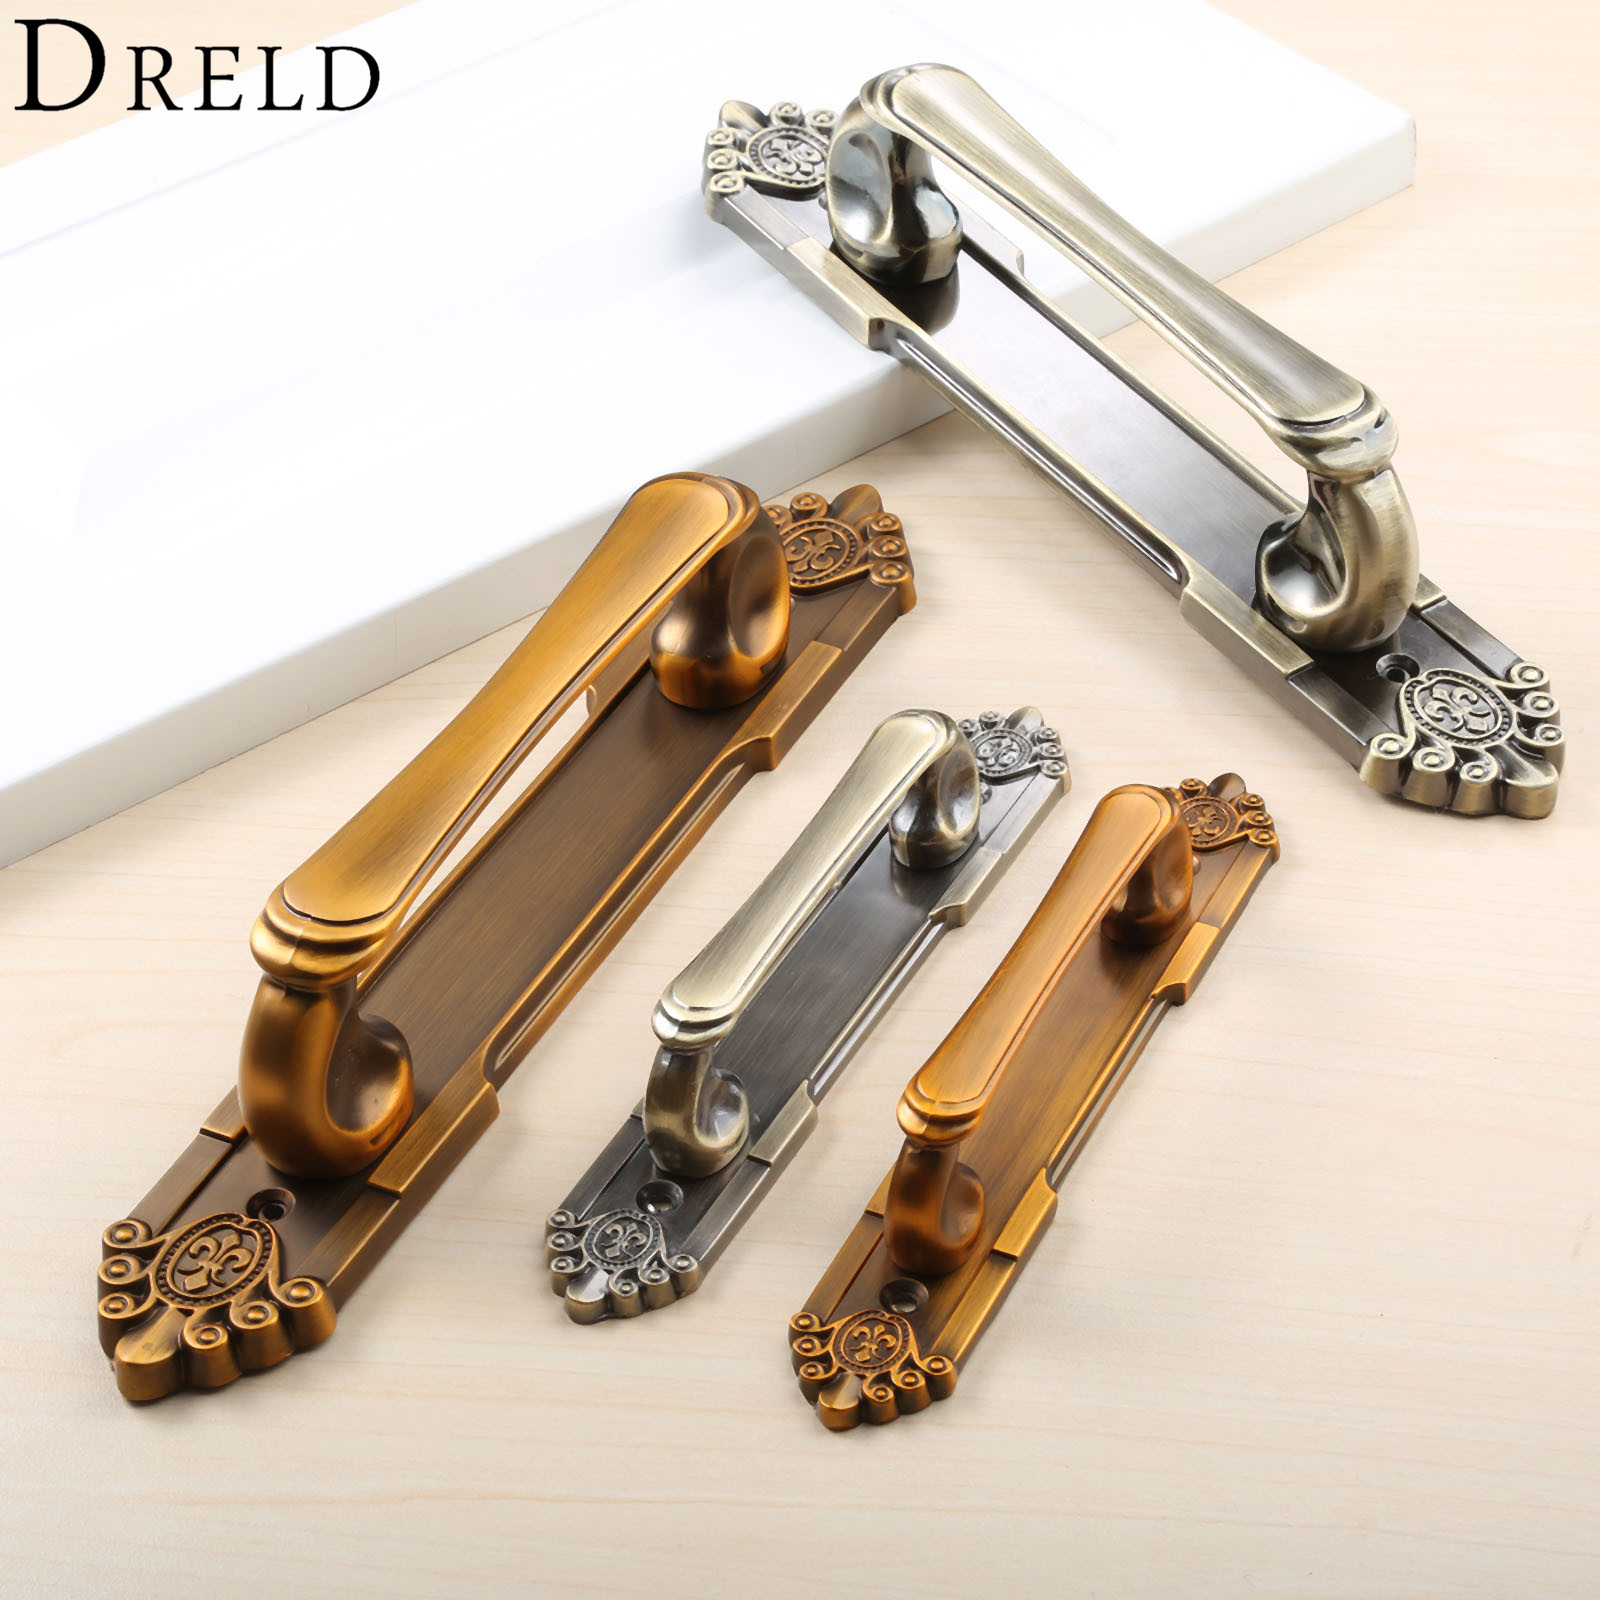 DRELD Antique Furniture Handles European Vintage Alloy Door Handles Drawer Pull For Cabinet Wardrobe Cupboard Bronze Knobs 1 pair 96mm vintage furniture cupboard wardrobe handles and knobs antique bronze alloy kitchen cabinet door drawer pull handle